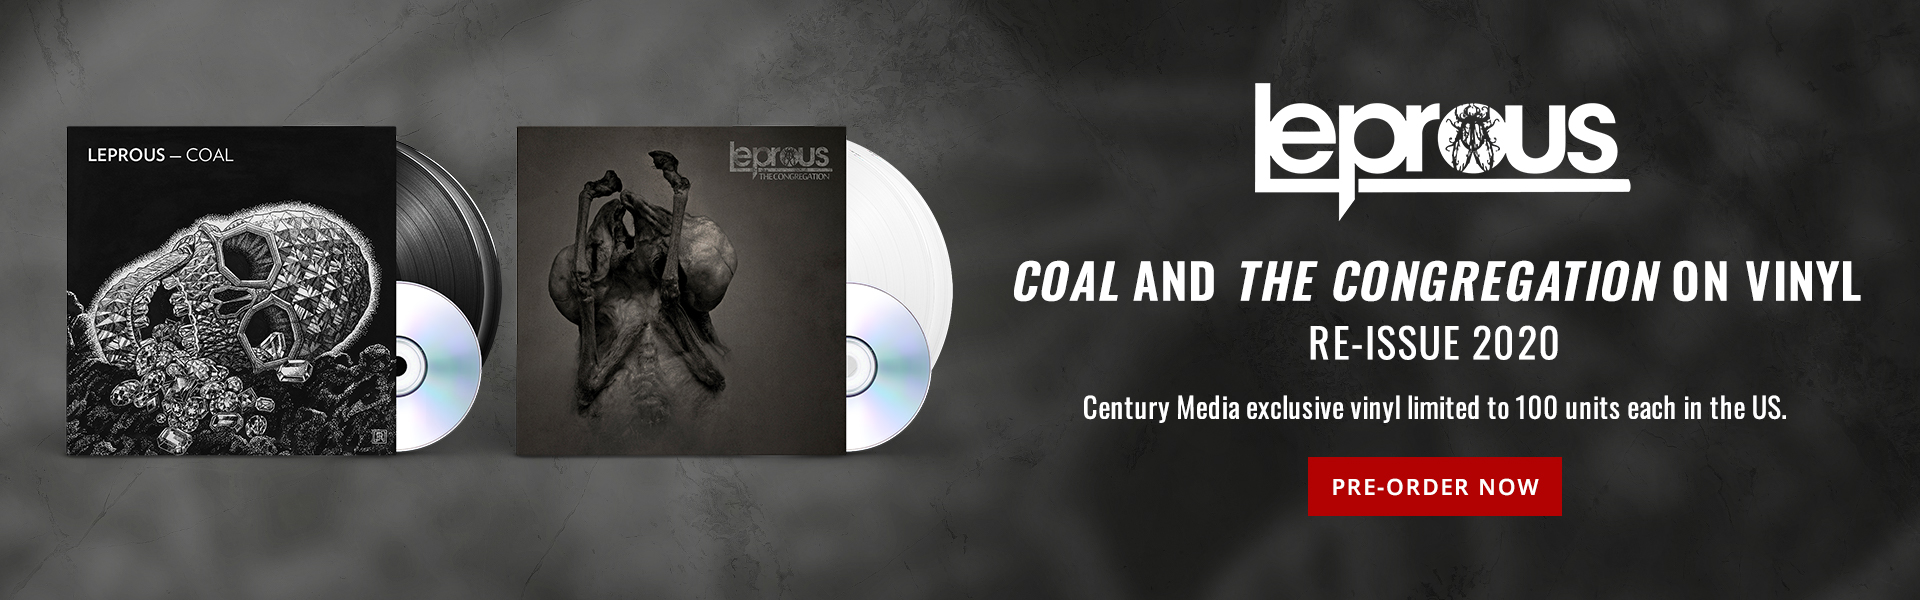 Leprous | Coal and The Congregation on vinyl. Re-issue 2020. | Century Media exclusive vinyl limited to 100 units each in the US. | Pre-order Now.